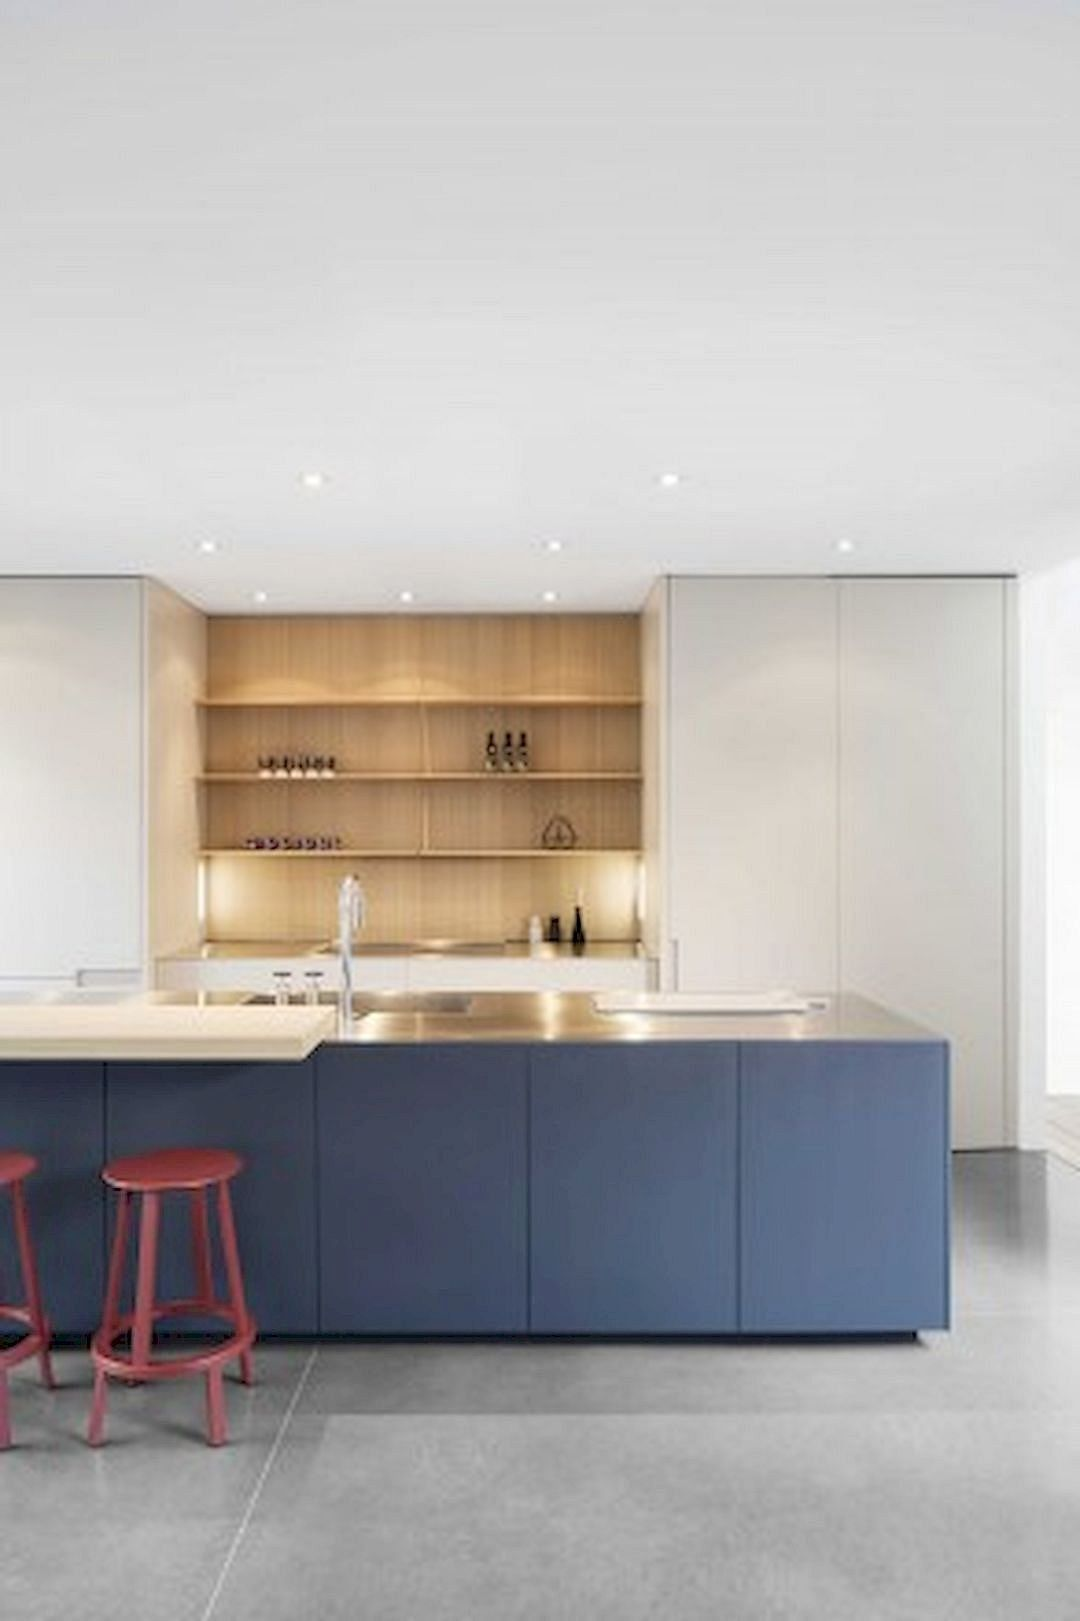 Perfectly Designed Modern Kitchen Inspirations 165 Photos httpswww